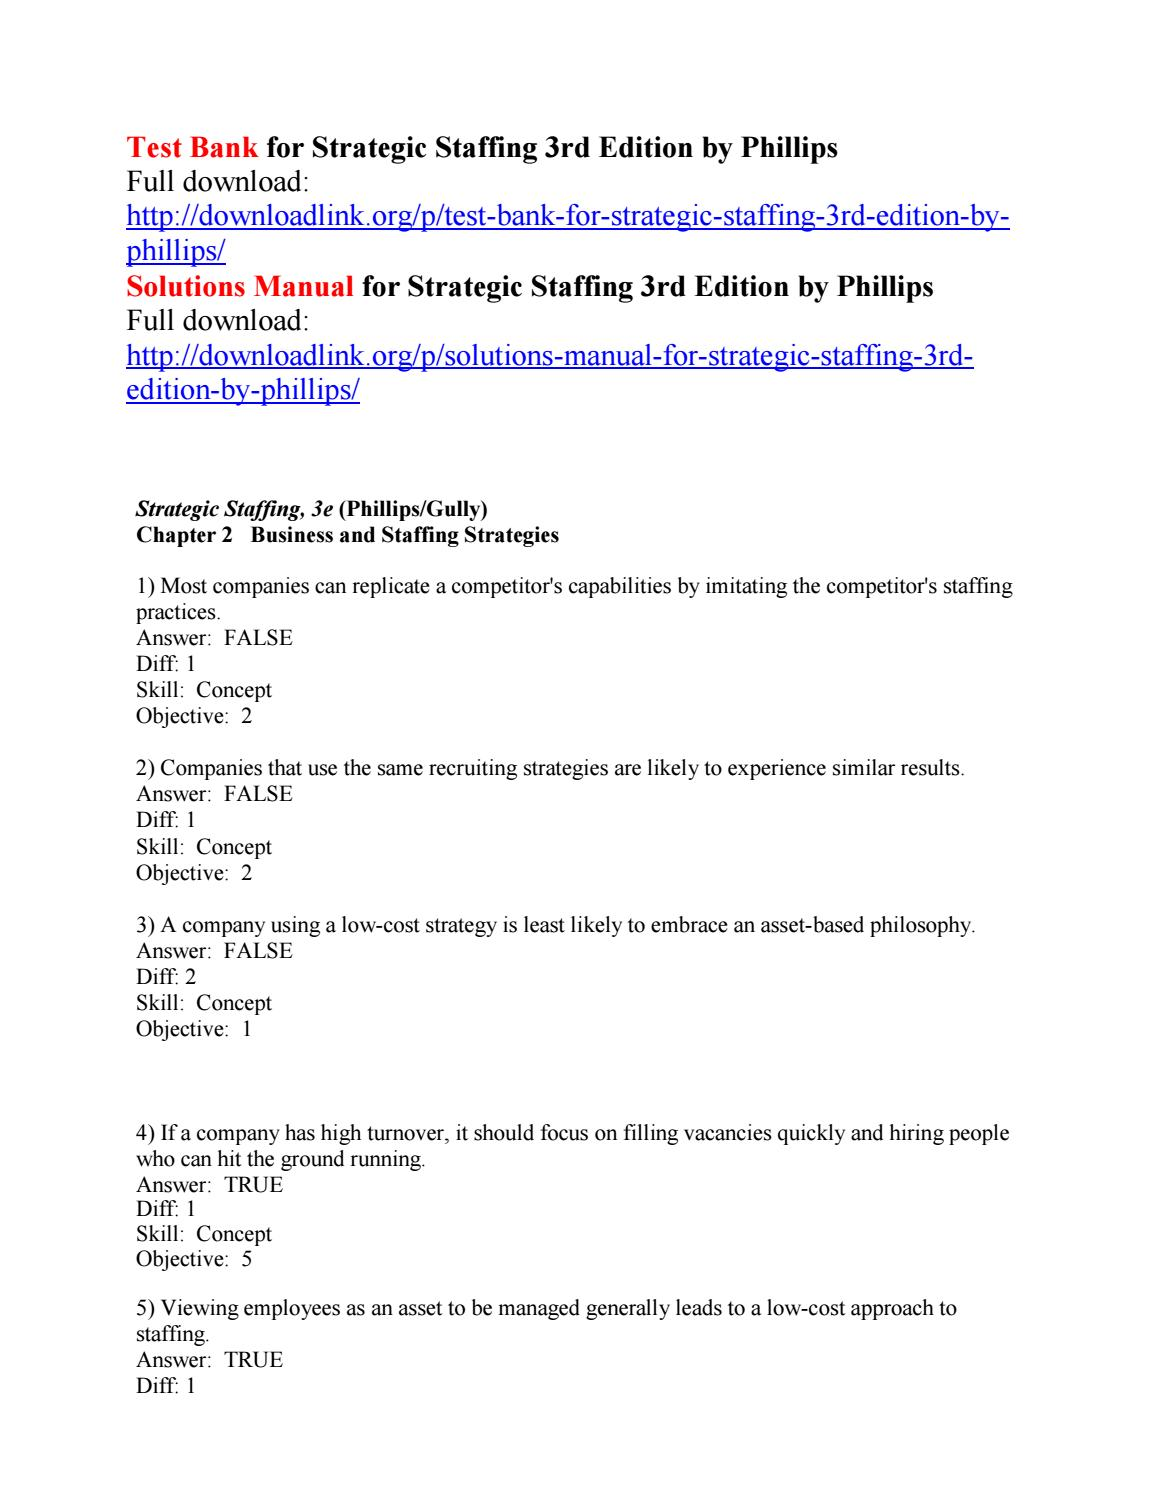 Test Bank For Strategic Staffing 3rd Edition By Phillips By Glen111 Issuu